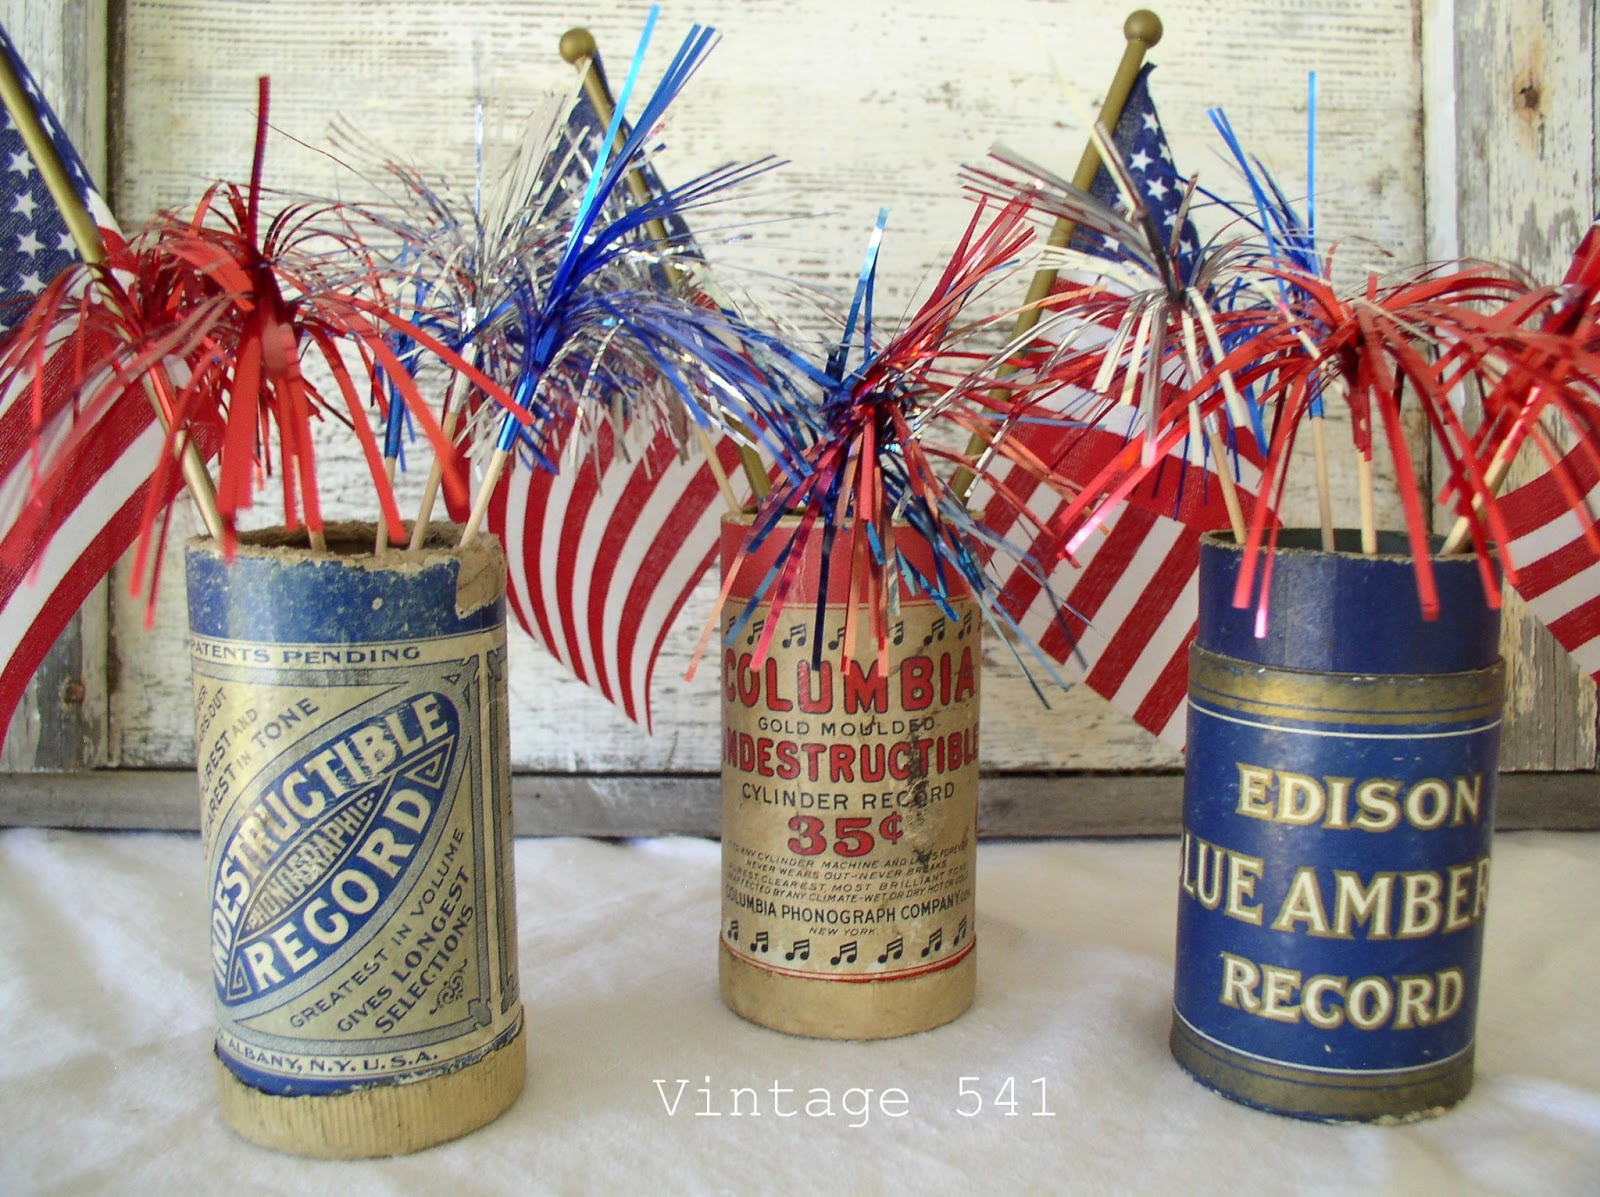 Vintage 541 Vintage Patriotic Decor